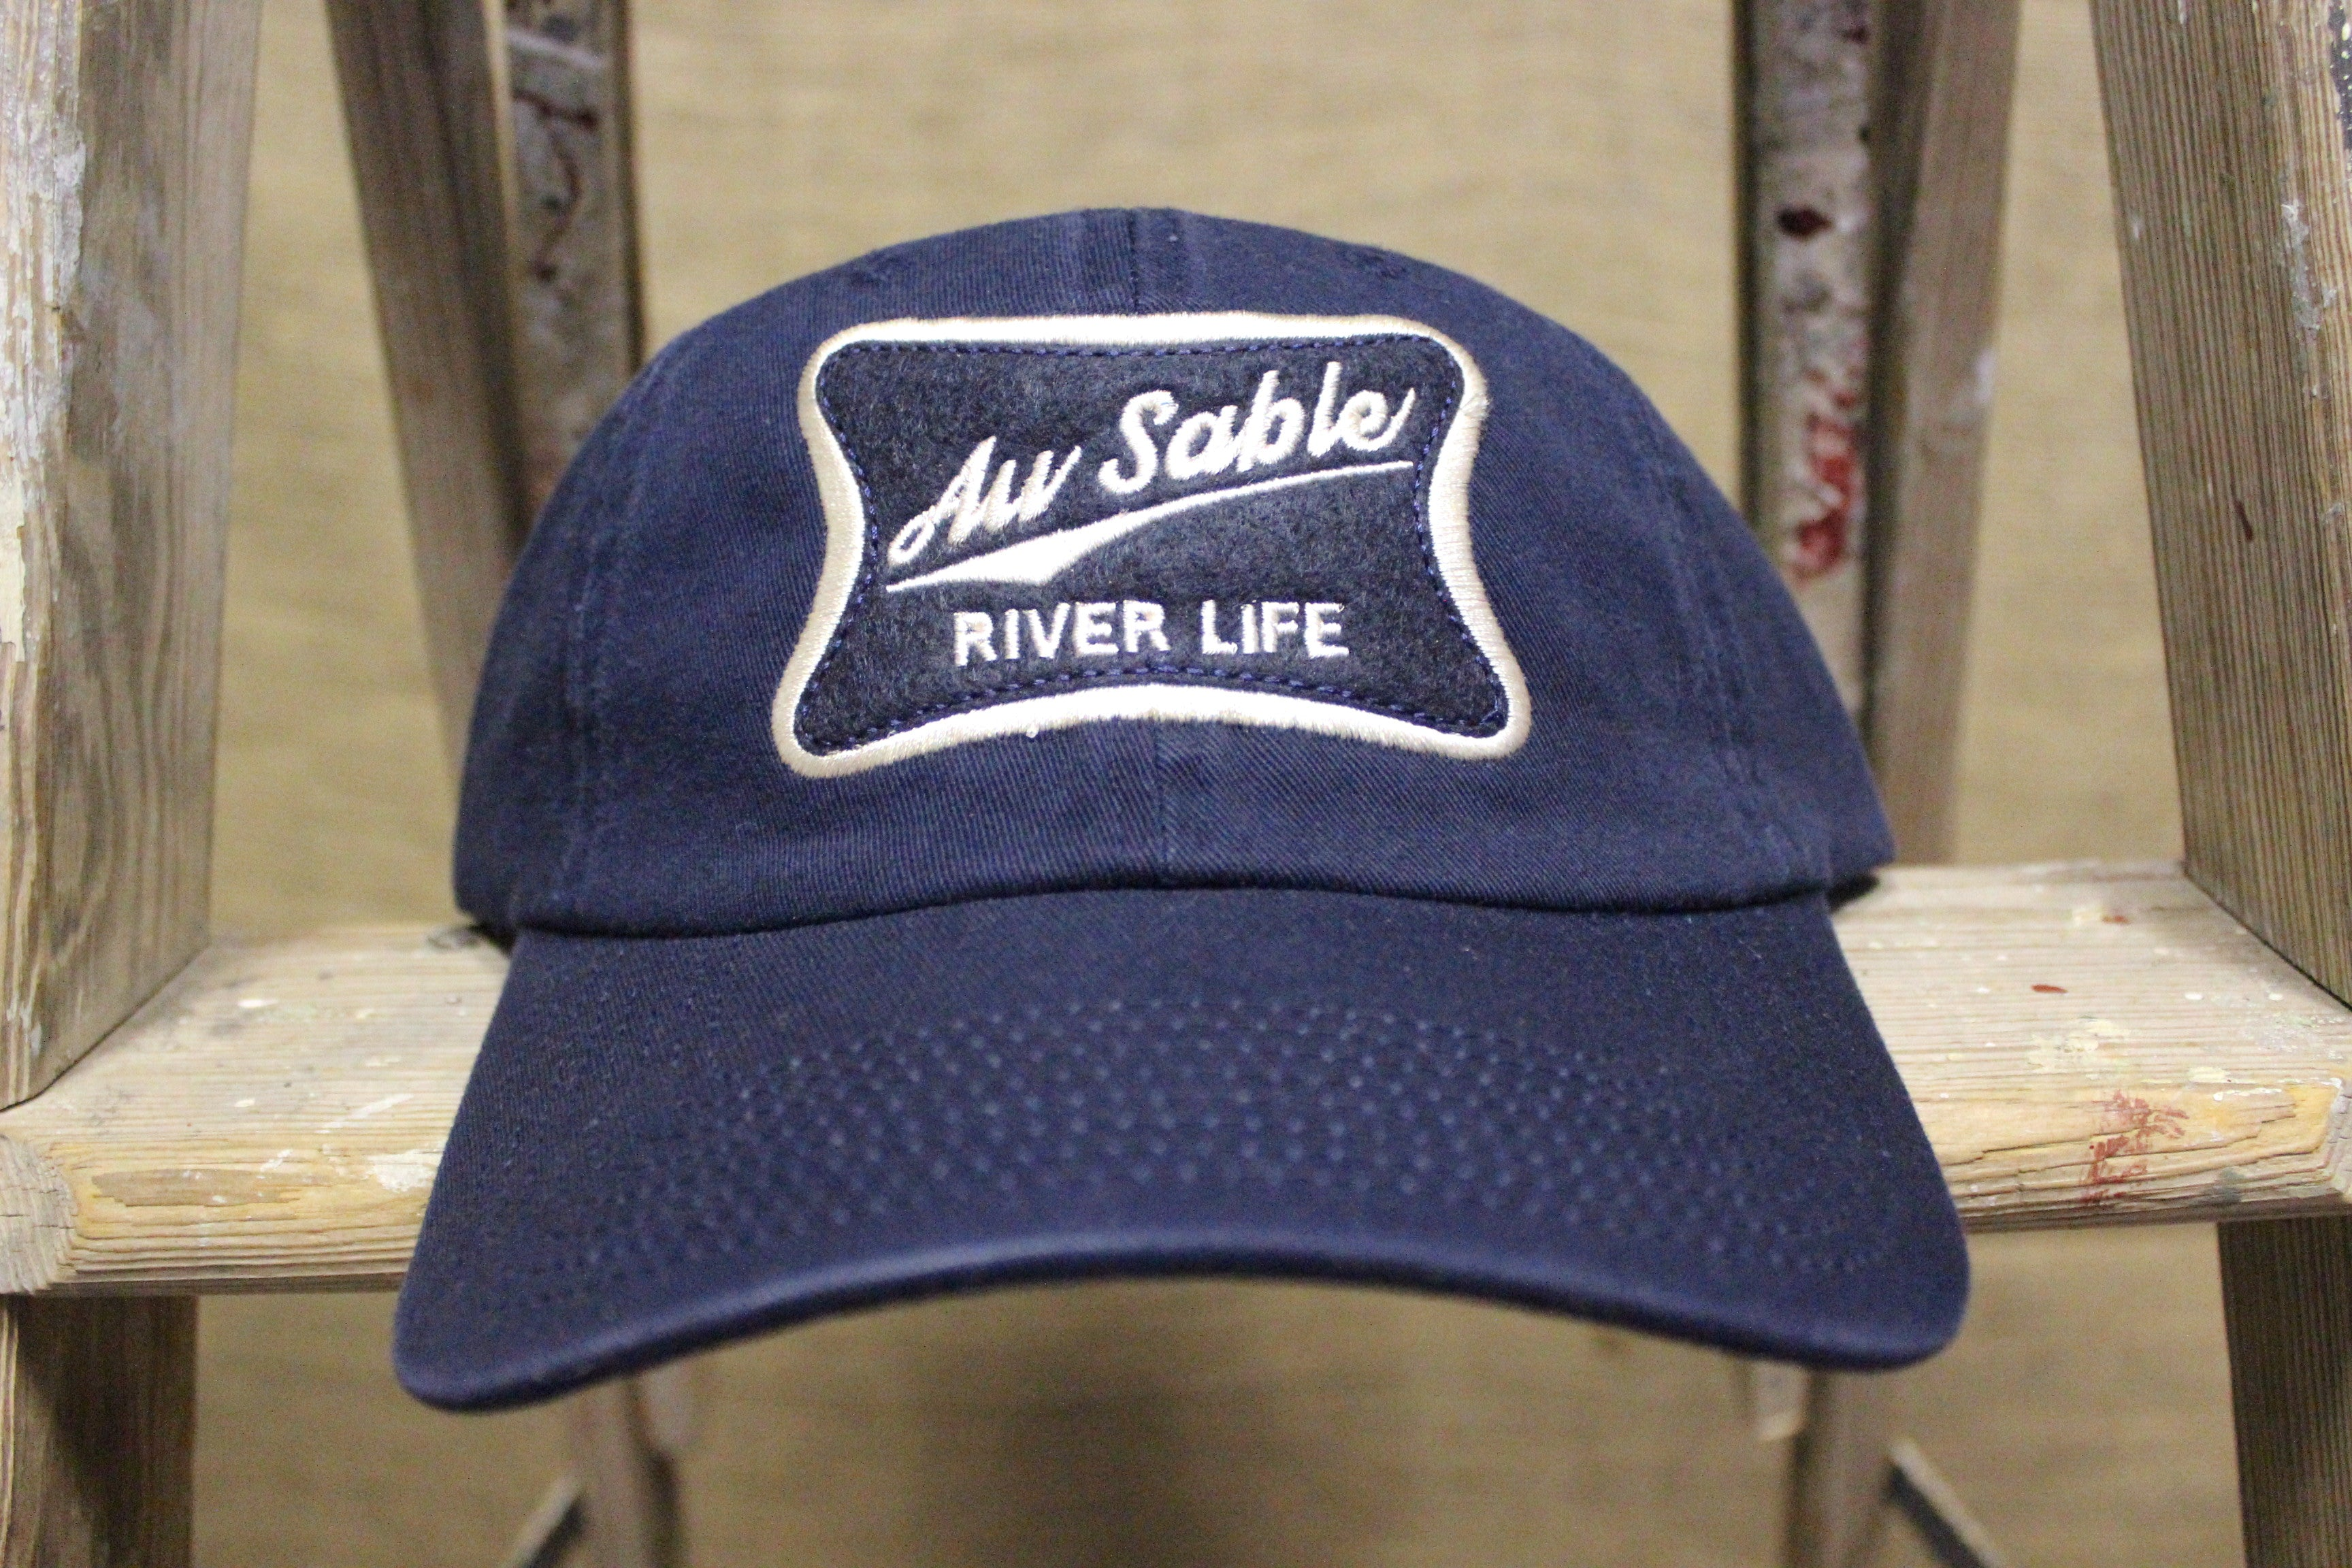 Au Sable River Life Adjustable Hats (Click to view available colors) – The Local  Basket Case LLC 3b82e909ede8